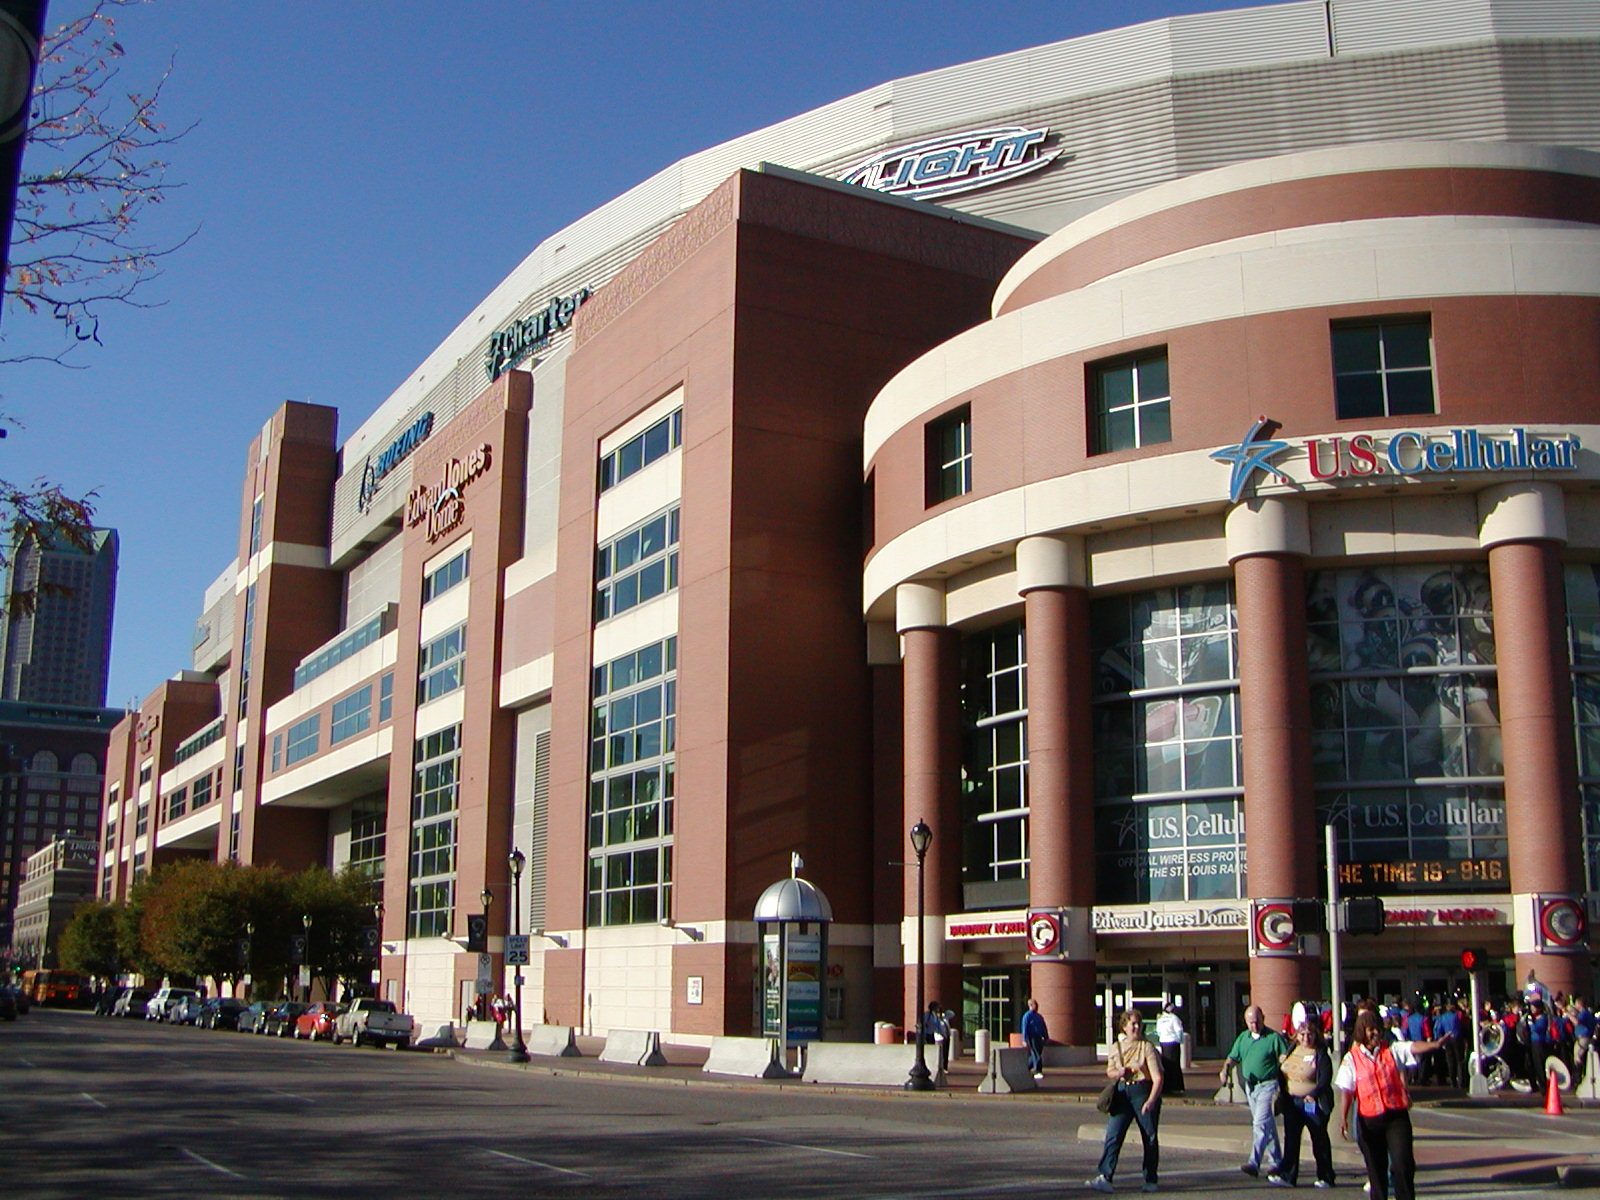 Street view of the Edward Jones Dome.